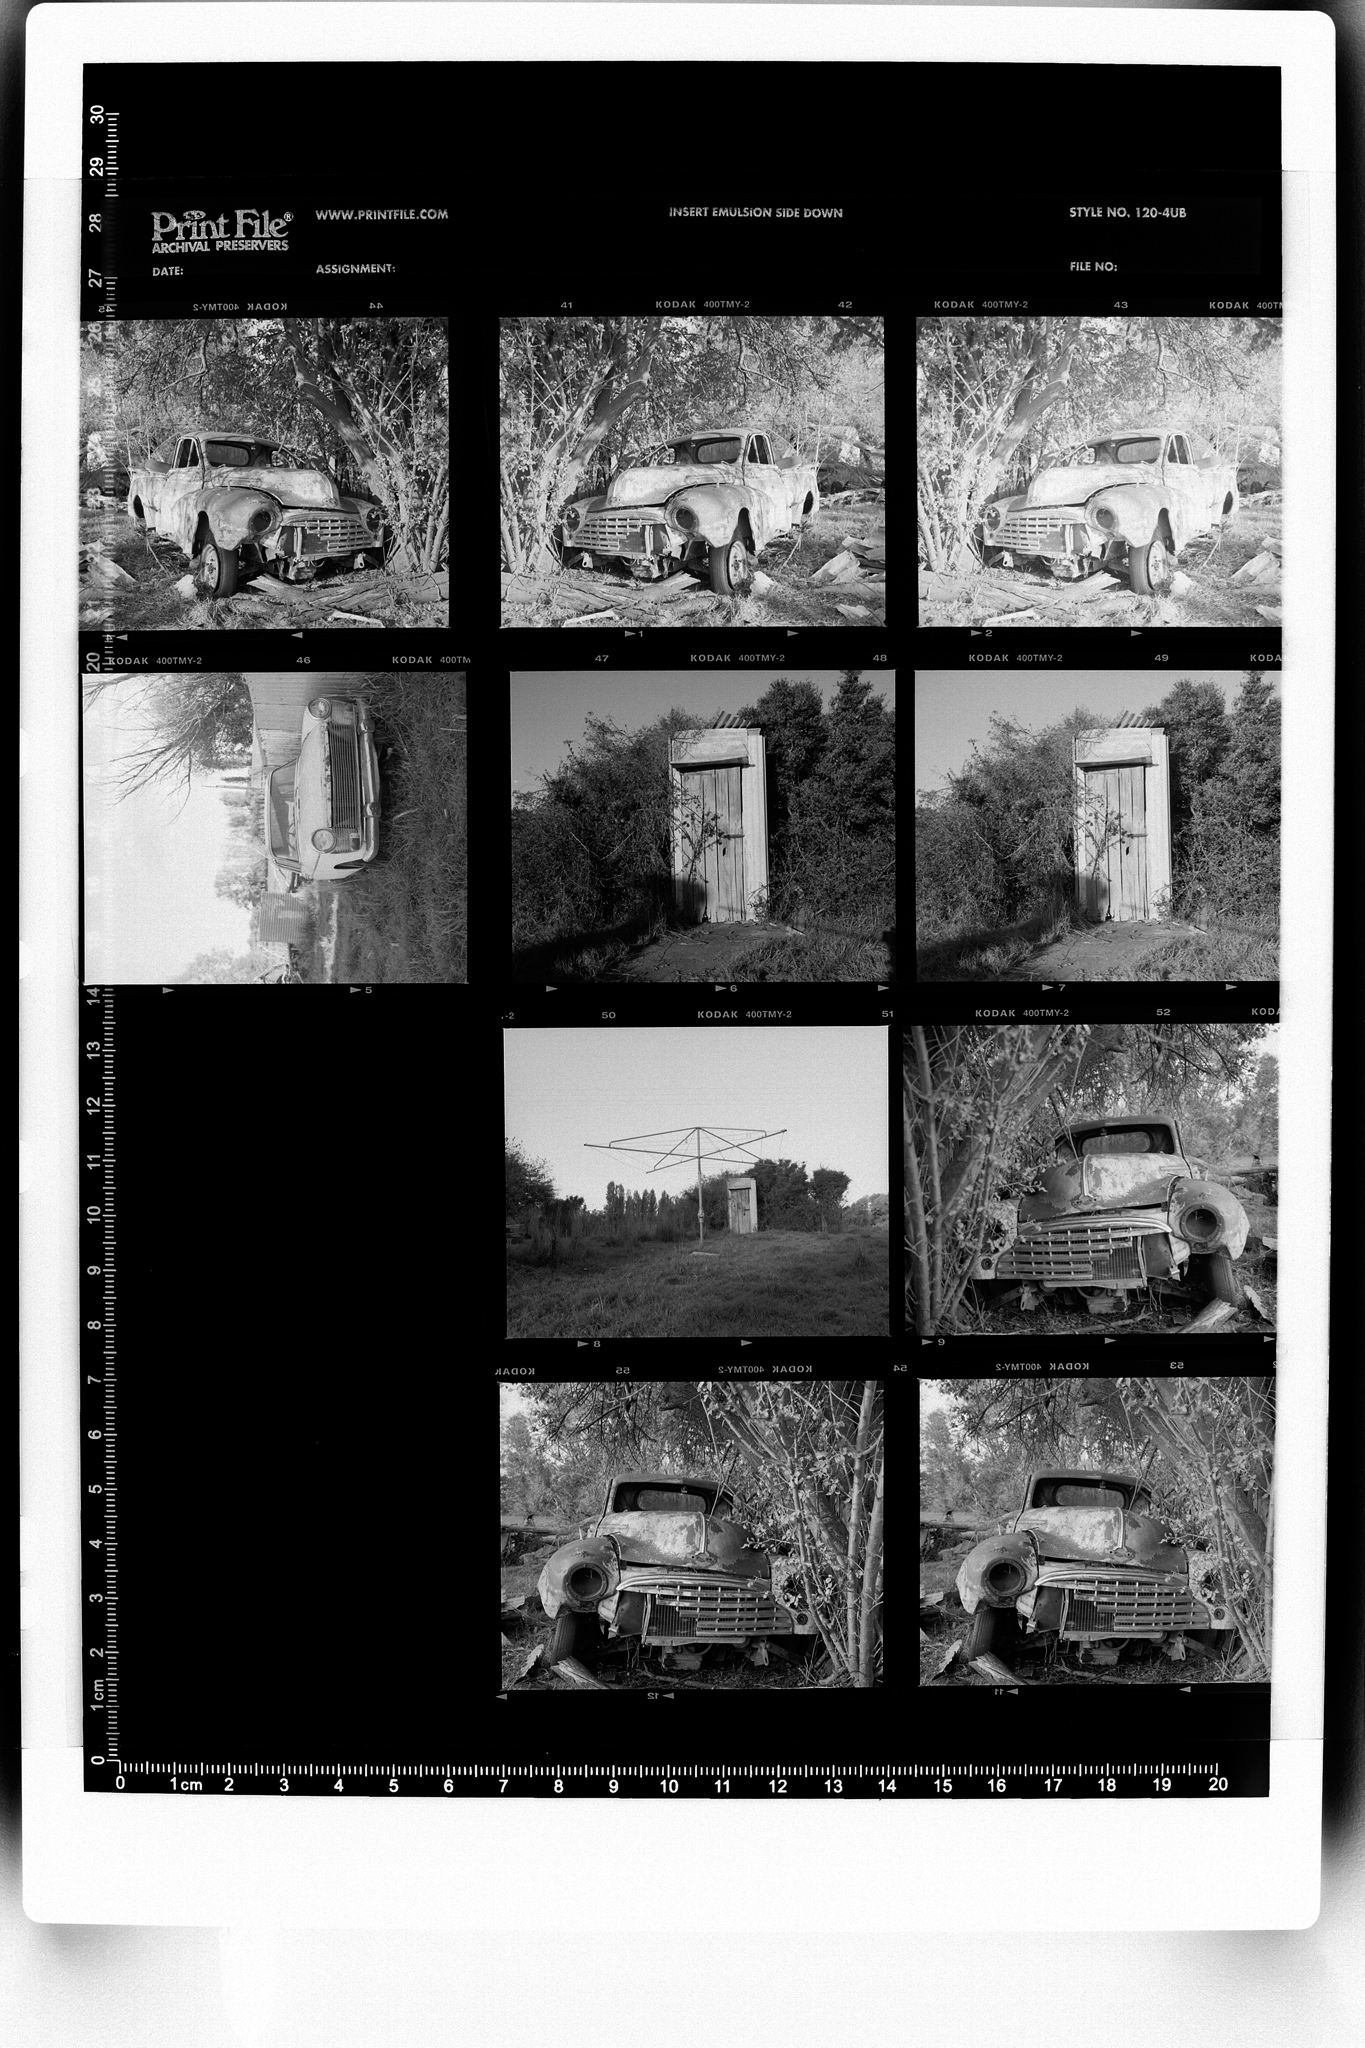 Contact print test